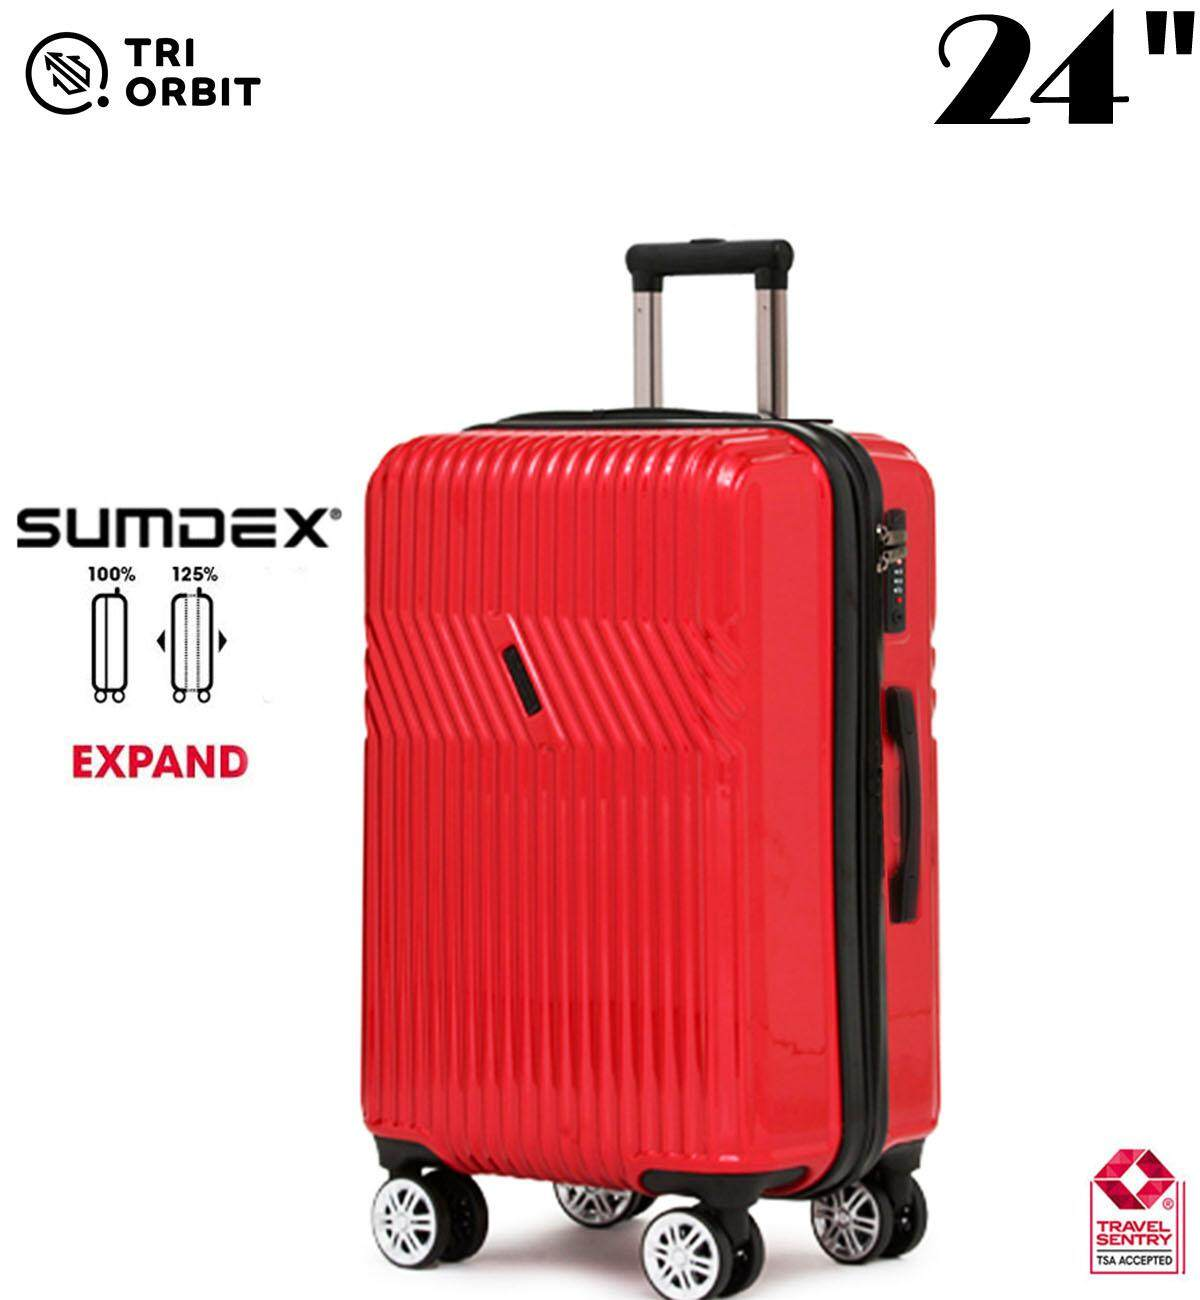 24 inch [ Tri-Orbit ] Korea Brand Expandable +25% Space Glossy Shining Surface with Build in TSA Lock Luggage Bag Bagasi [ Tri-Orbit] [LE0004-24 ]